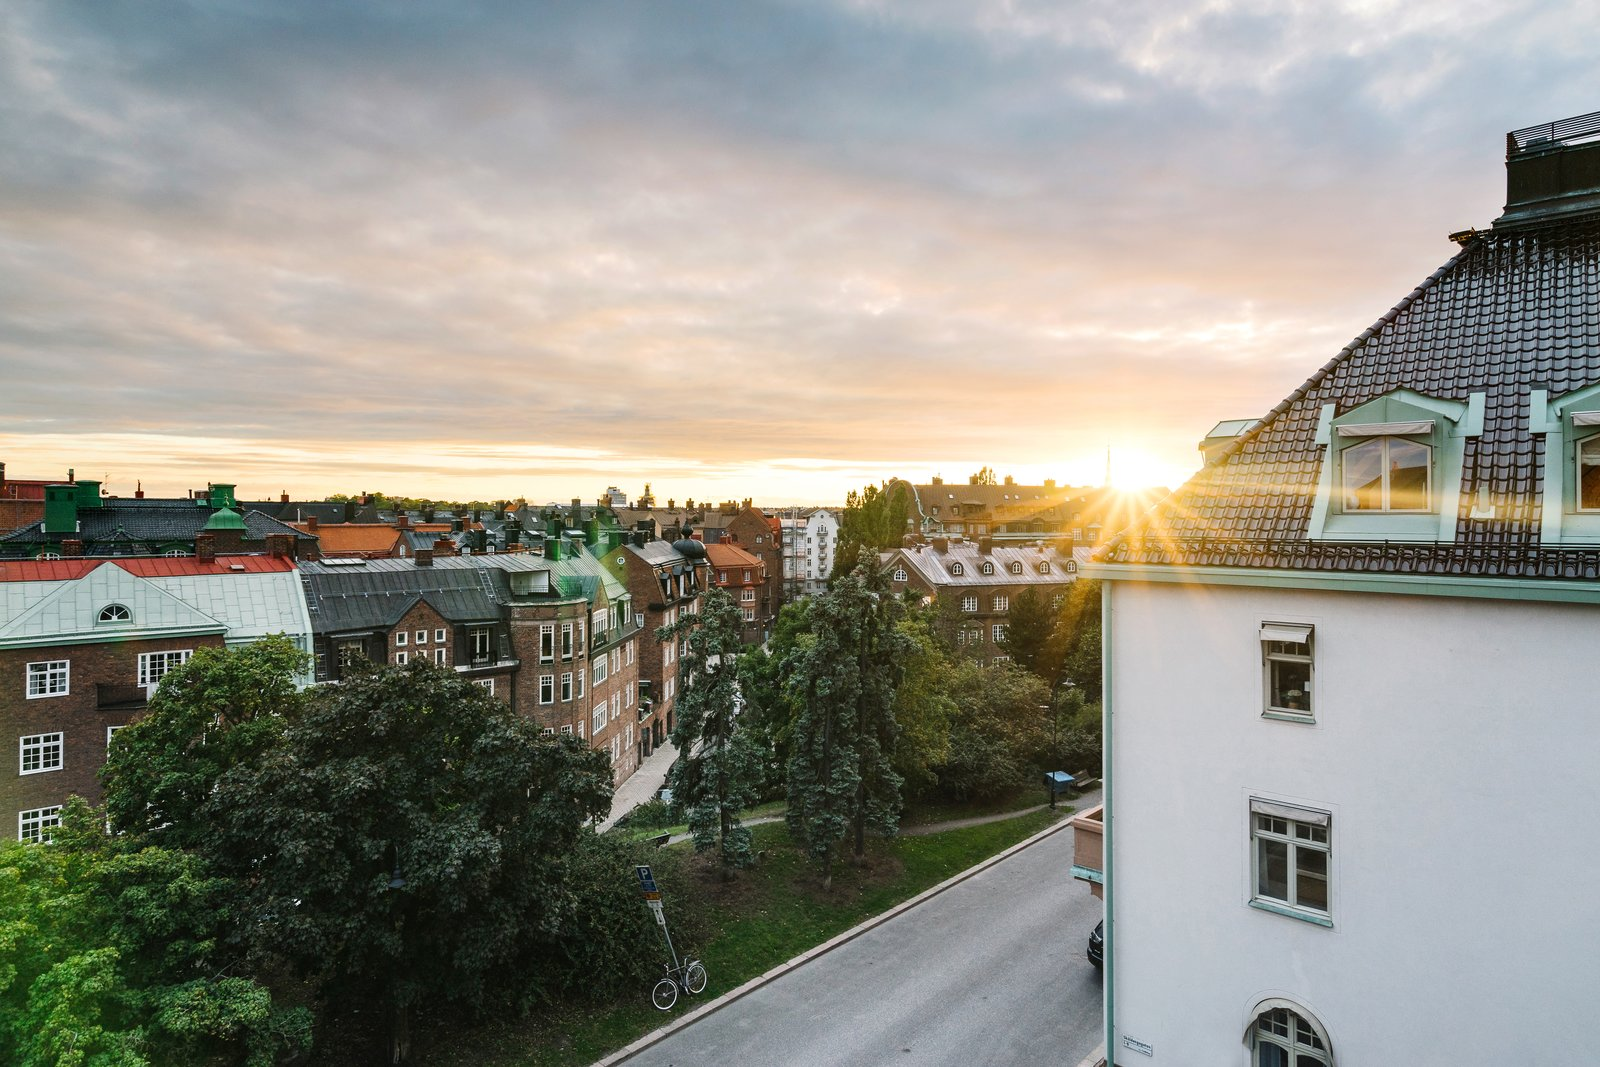 This view highlights the sunset from the top floor rooms, which overlooks the Östermalm neighborhood. A Visual Journey Through Stockholm's Hotel Ett Hem - Photo 12 of 13